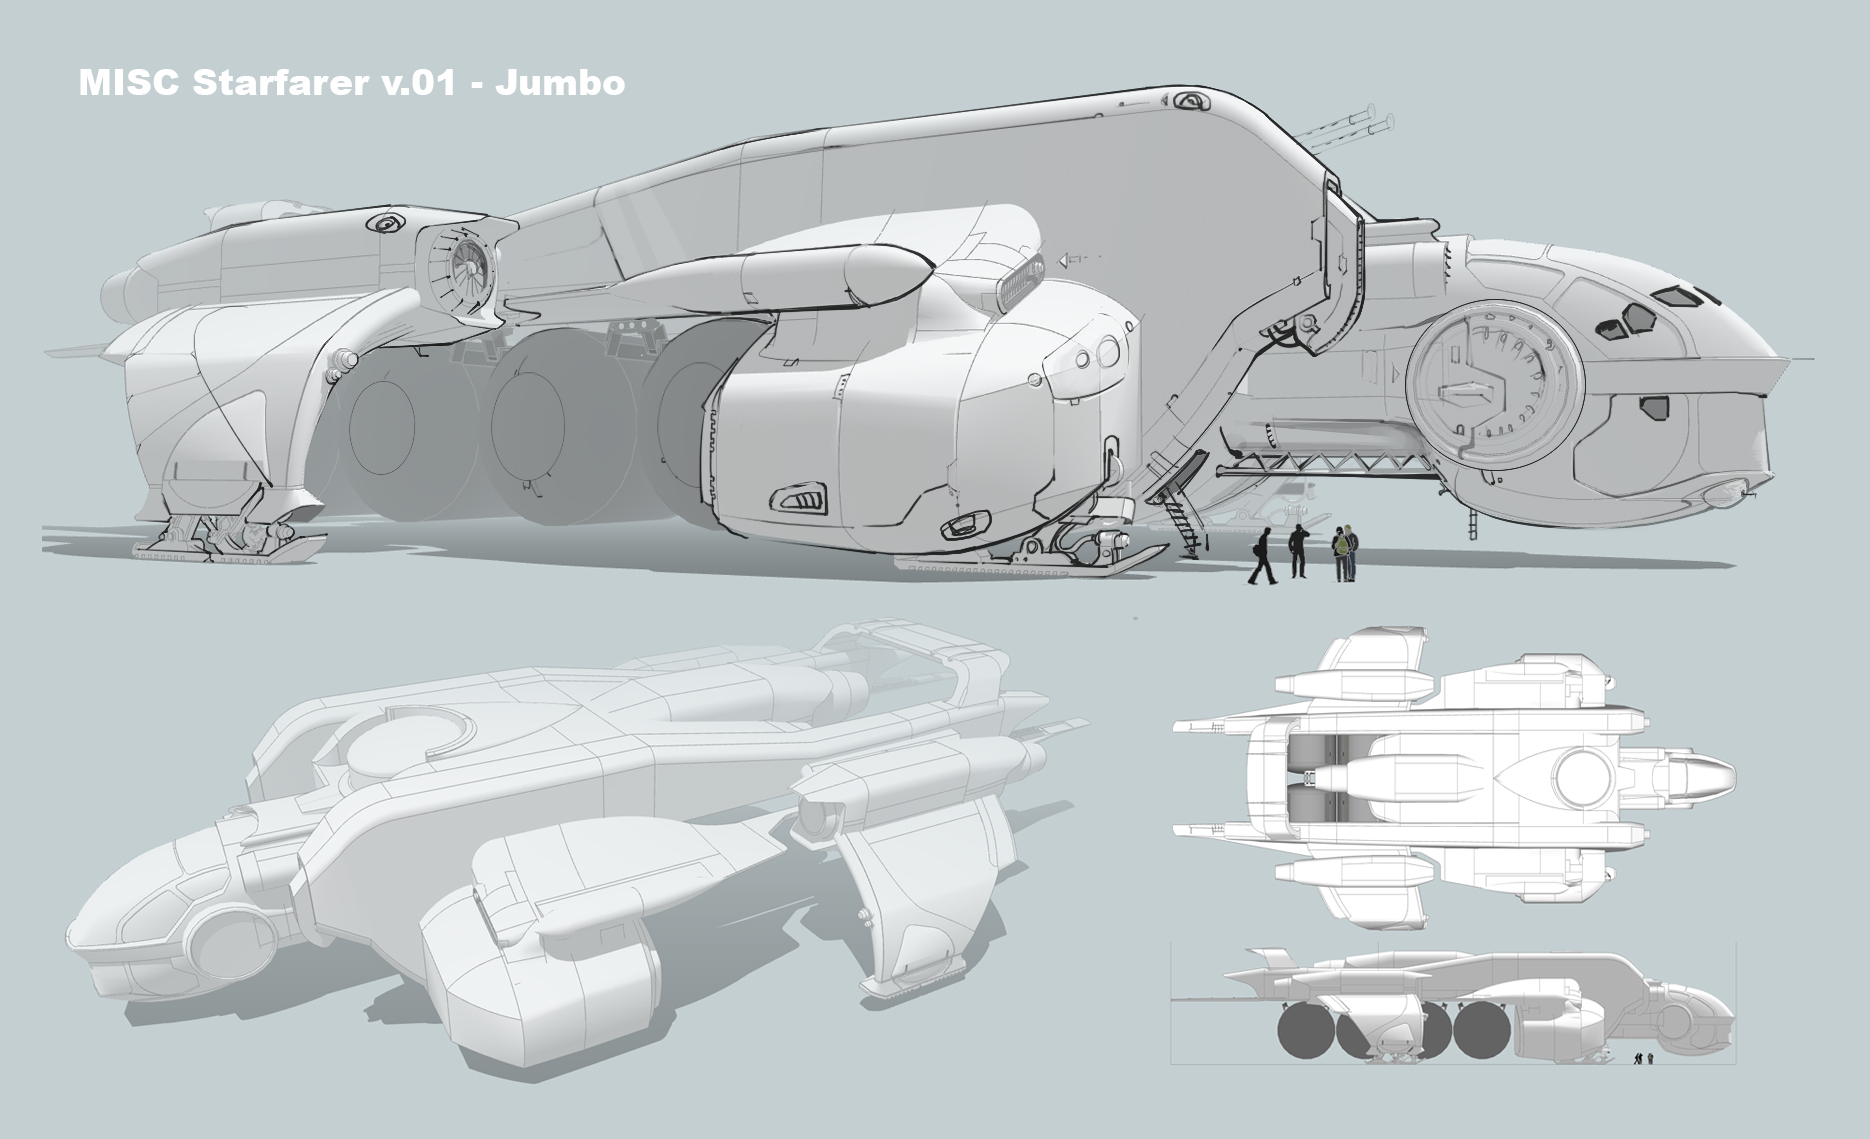 https://robertsspaceindustries.com/media/ffauzori9wzqzr/source/MISC_Starfarer_90m_v01_Jumbo.jpg